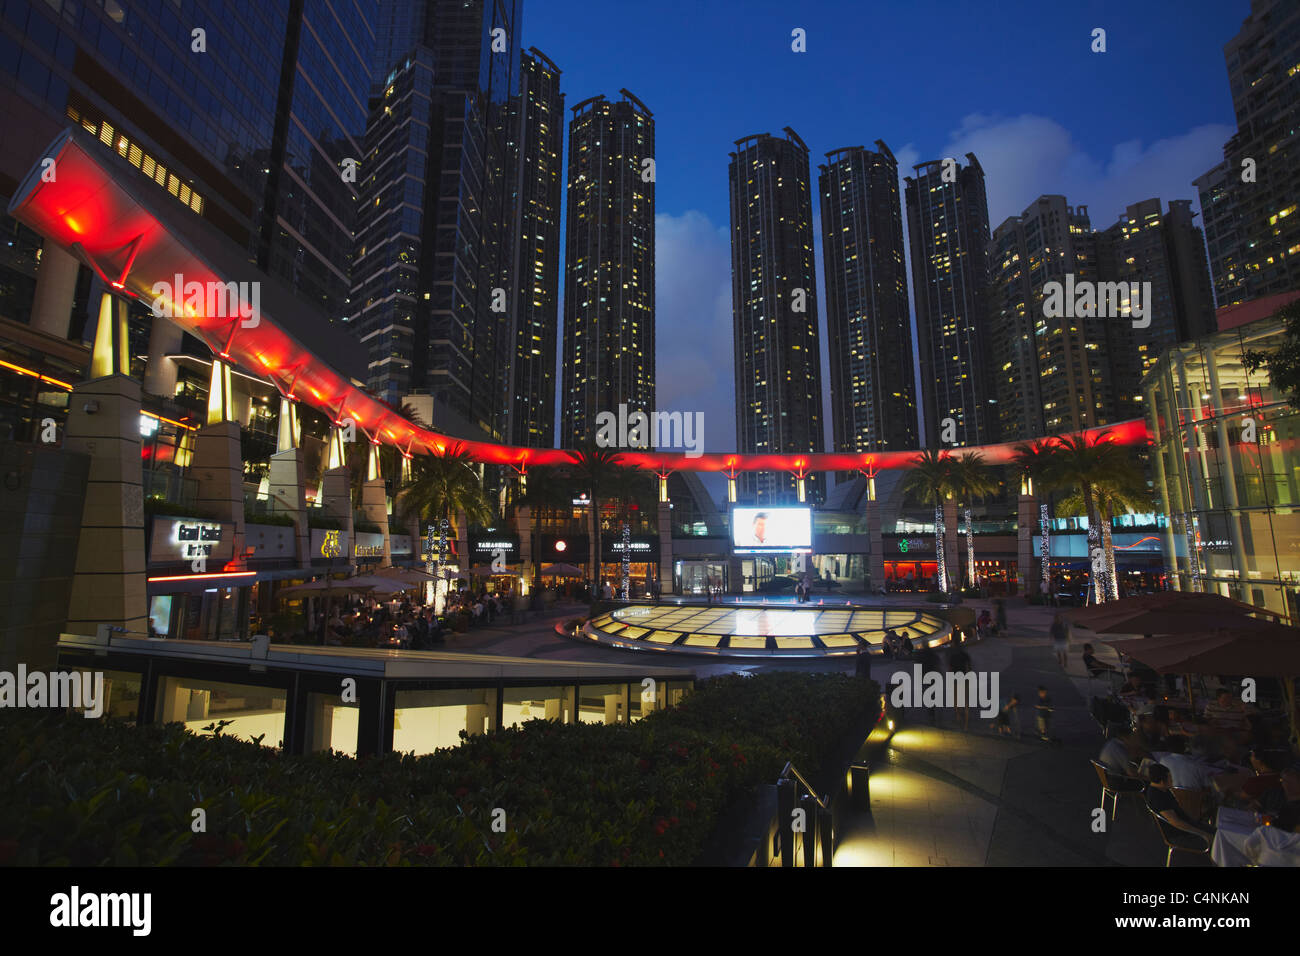 Restaurants in Civic Square, Elements Mall, West Kowloon, Hong Kong, China - Stock Image